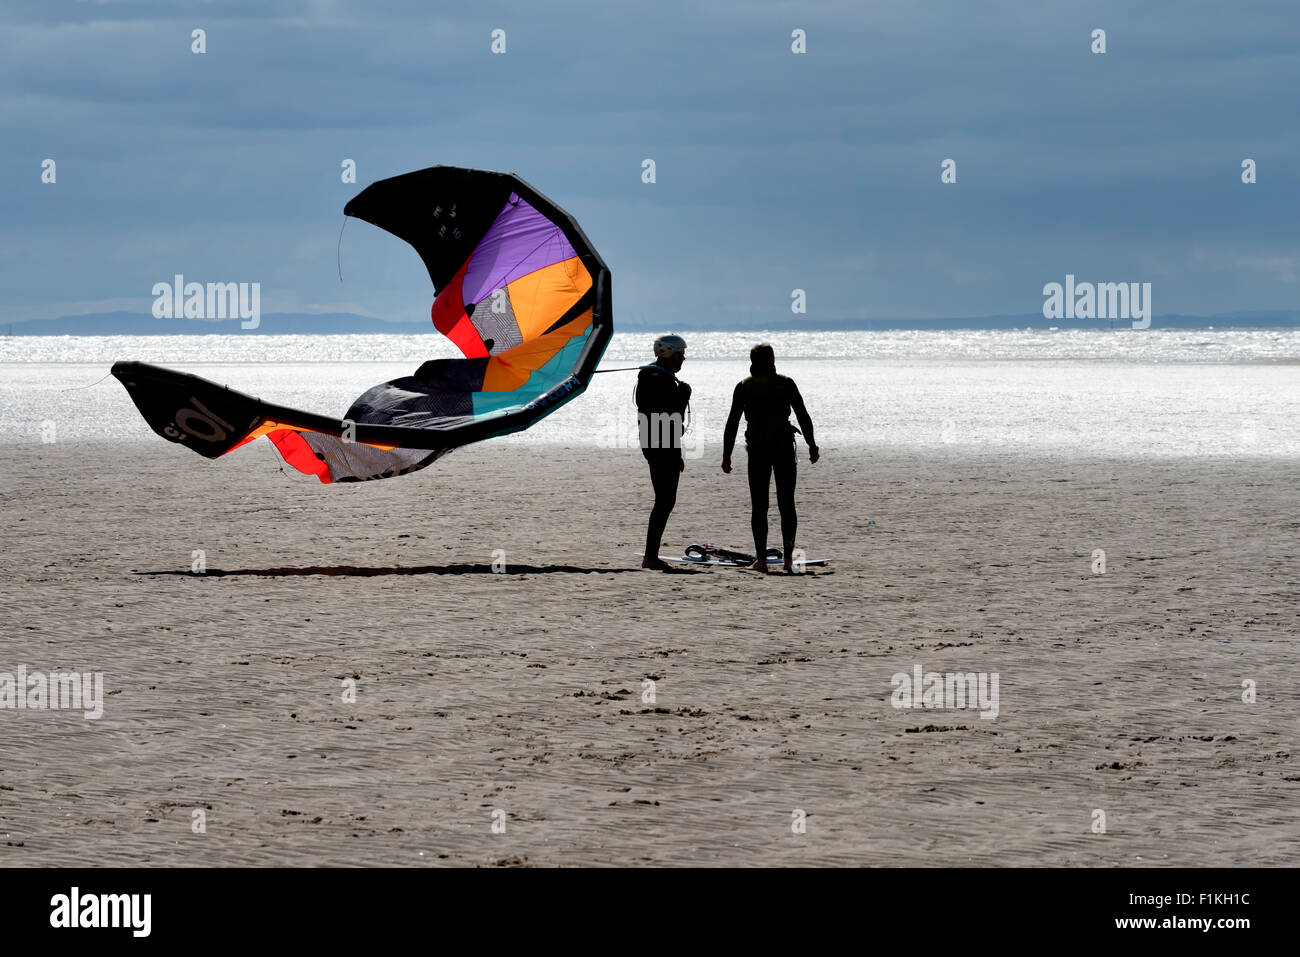 Two kitesurfers with equipment on the sandy beach at St Annes in Lancashire - Stock Image